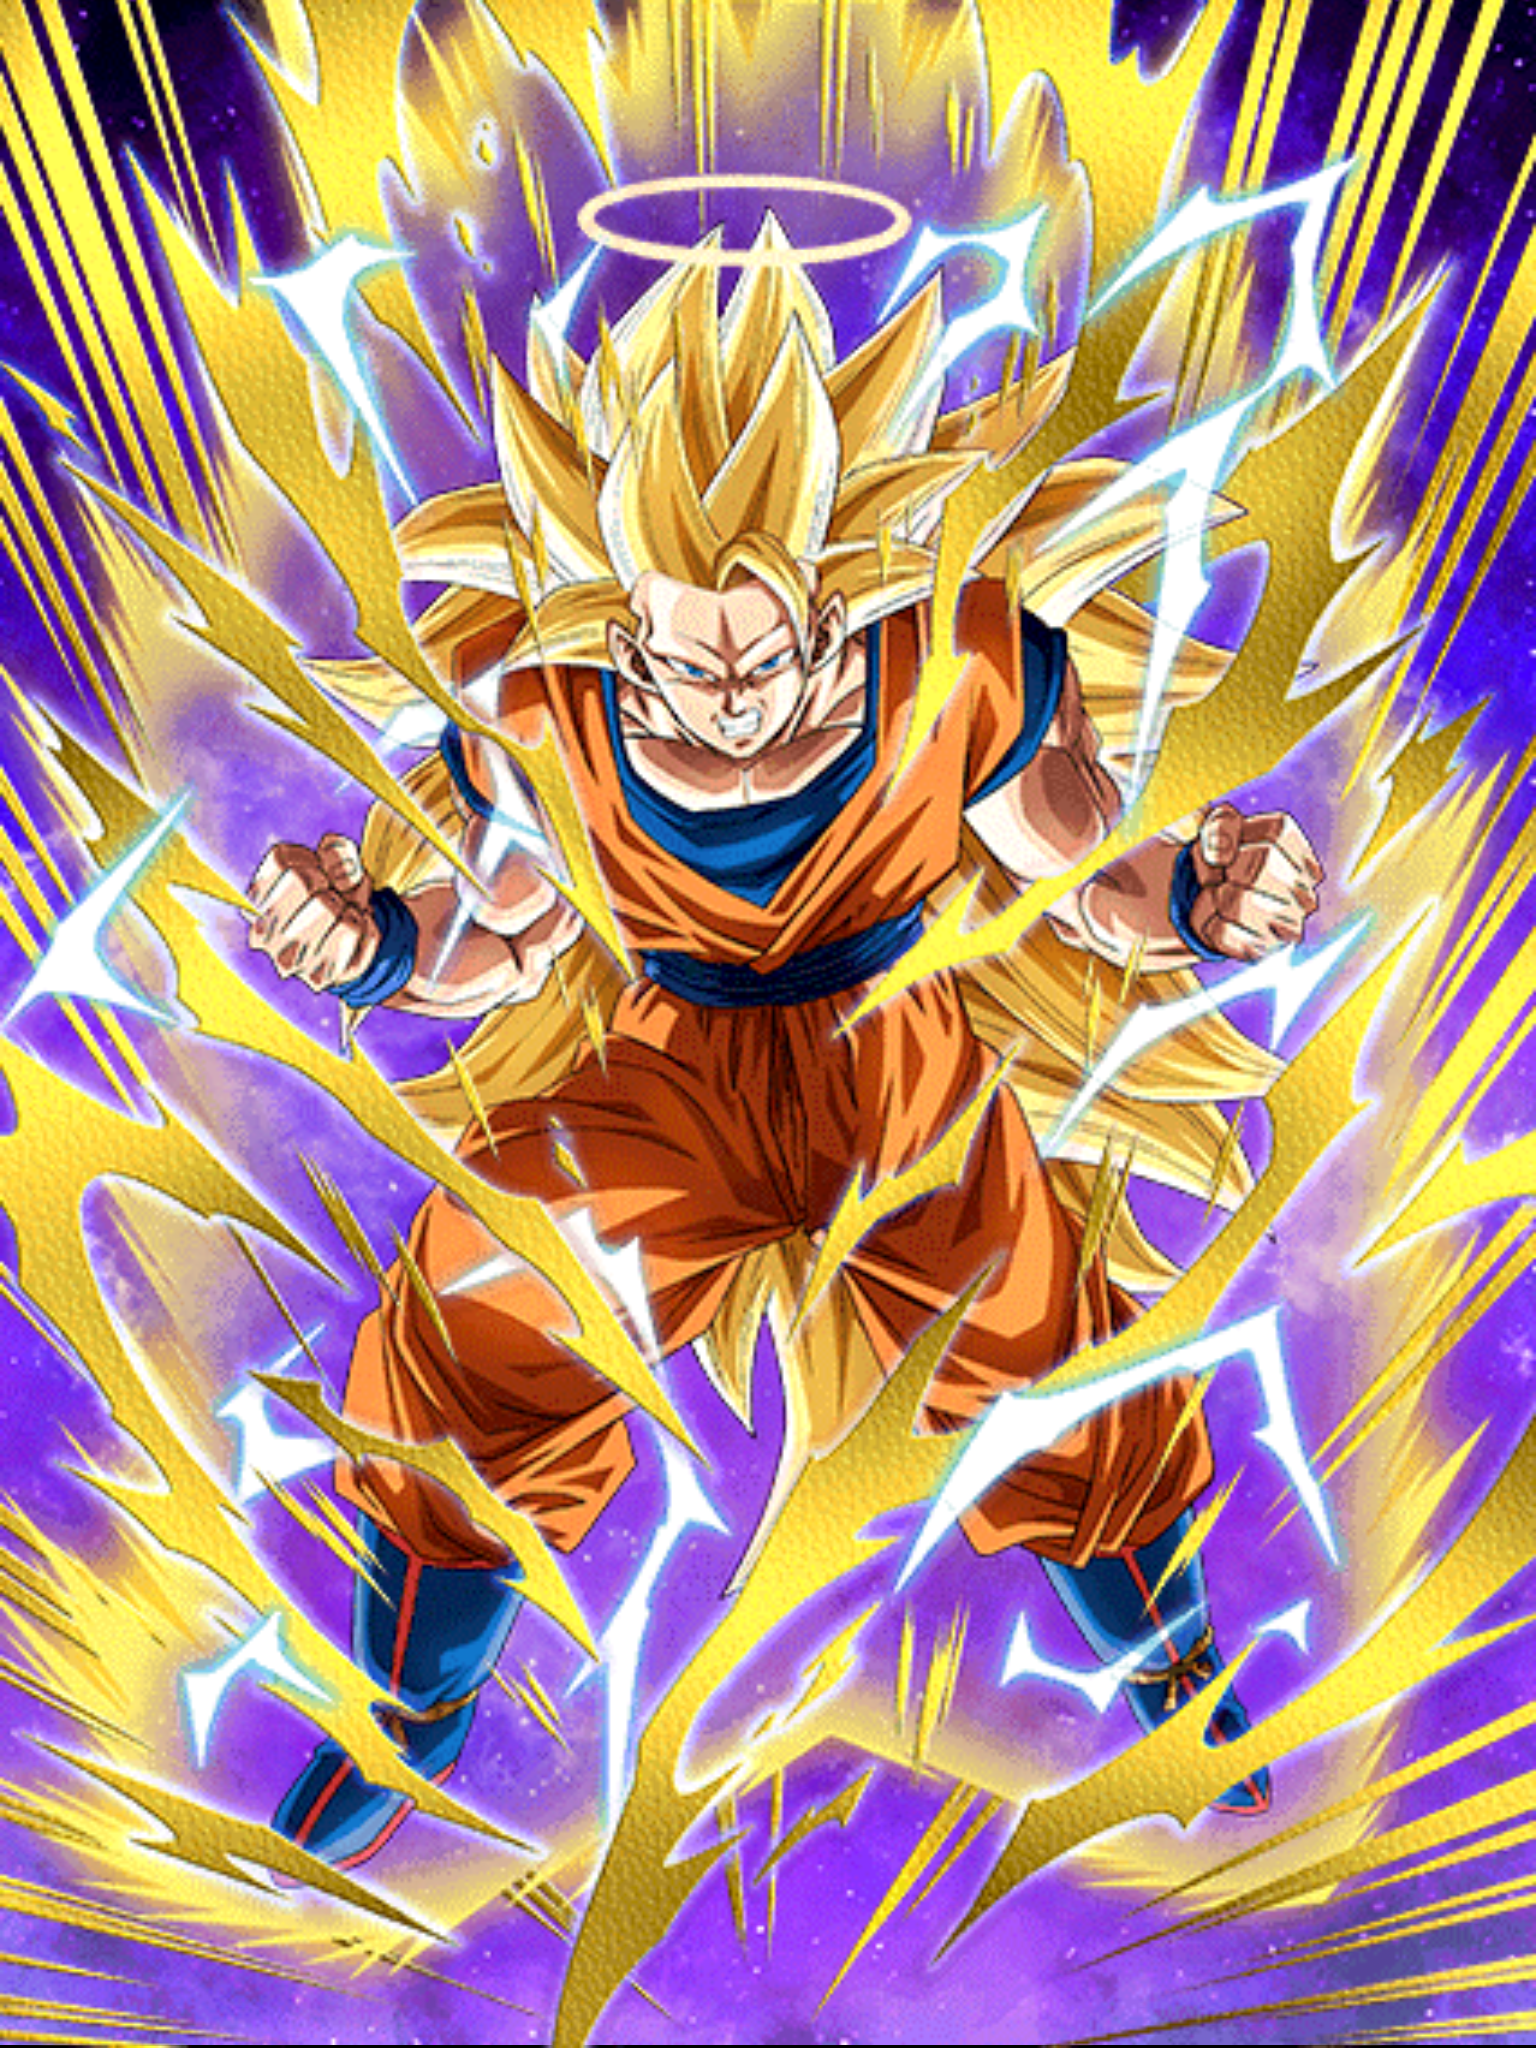 15 Goku Super Saiyan 3 Blue And Gold Wallpapers On Wallpapersafari